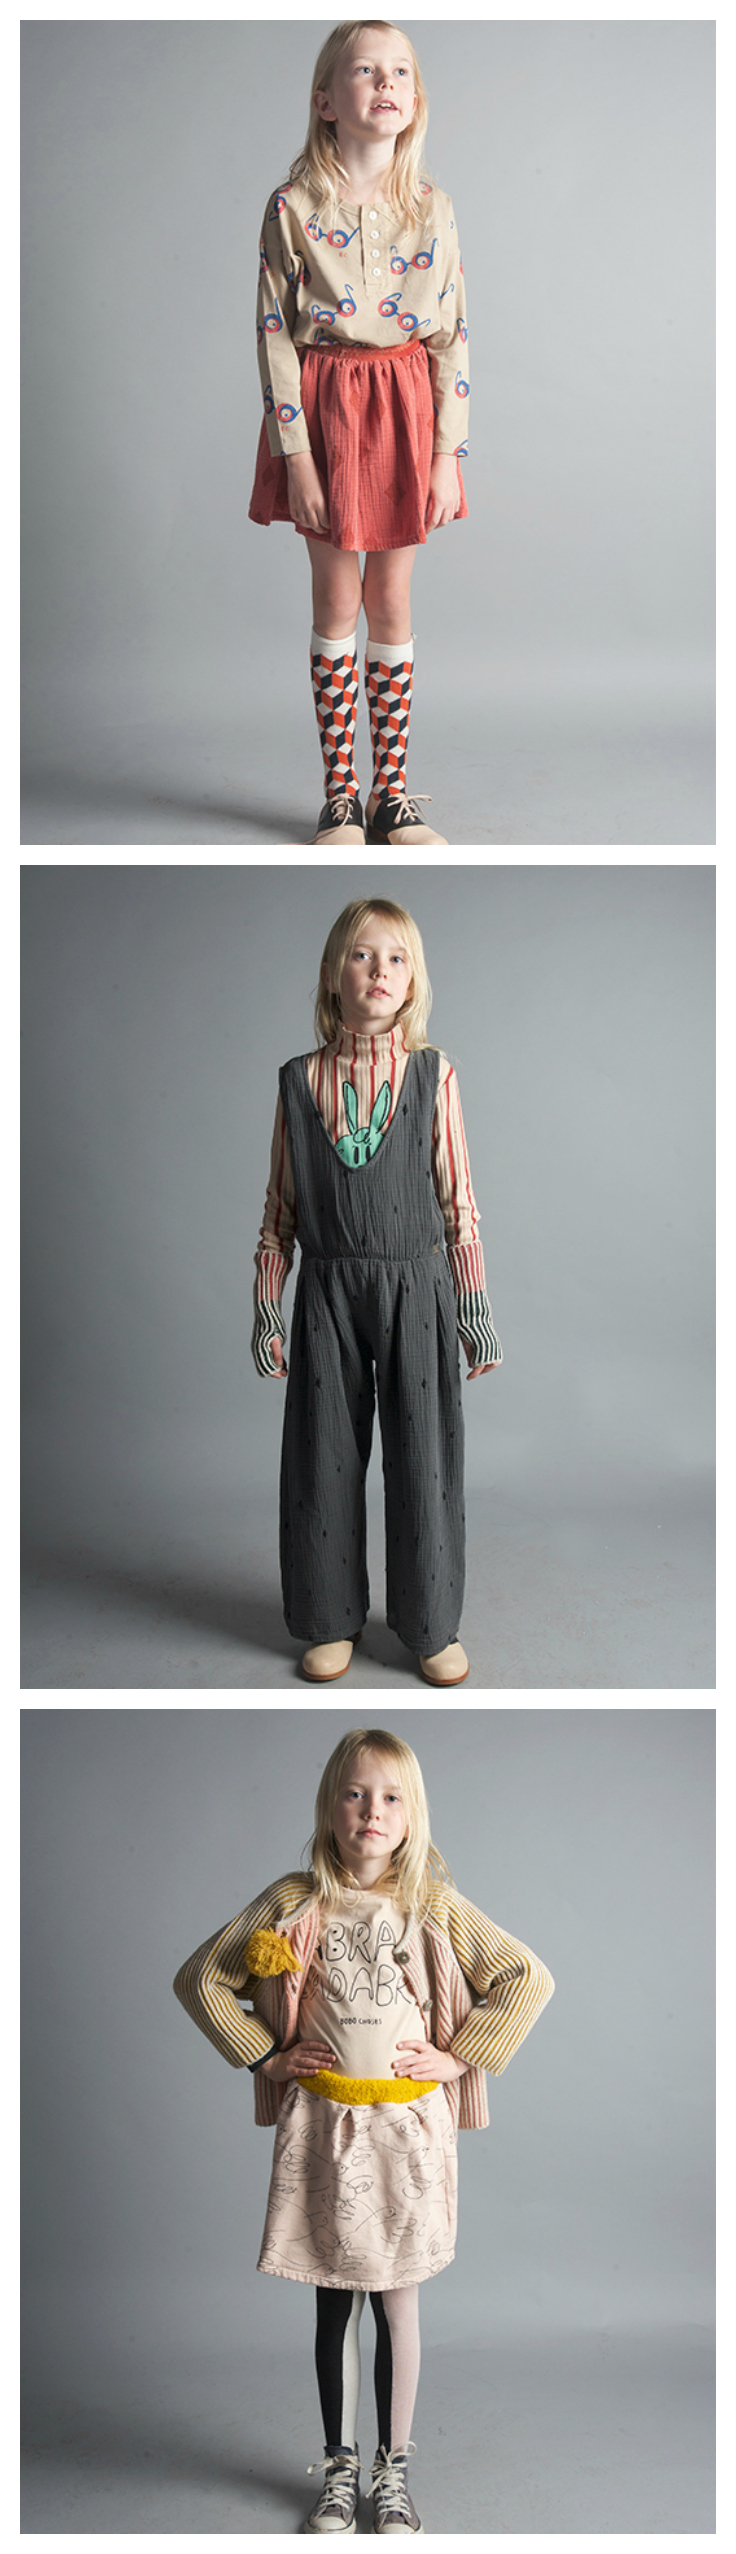 Autumn-Winter 2016, How to Disappear, Bobo Choses - Comfortable, fun clothes for girls